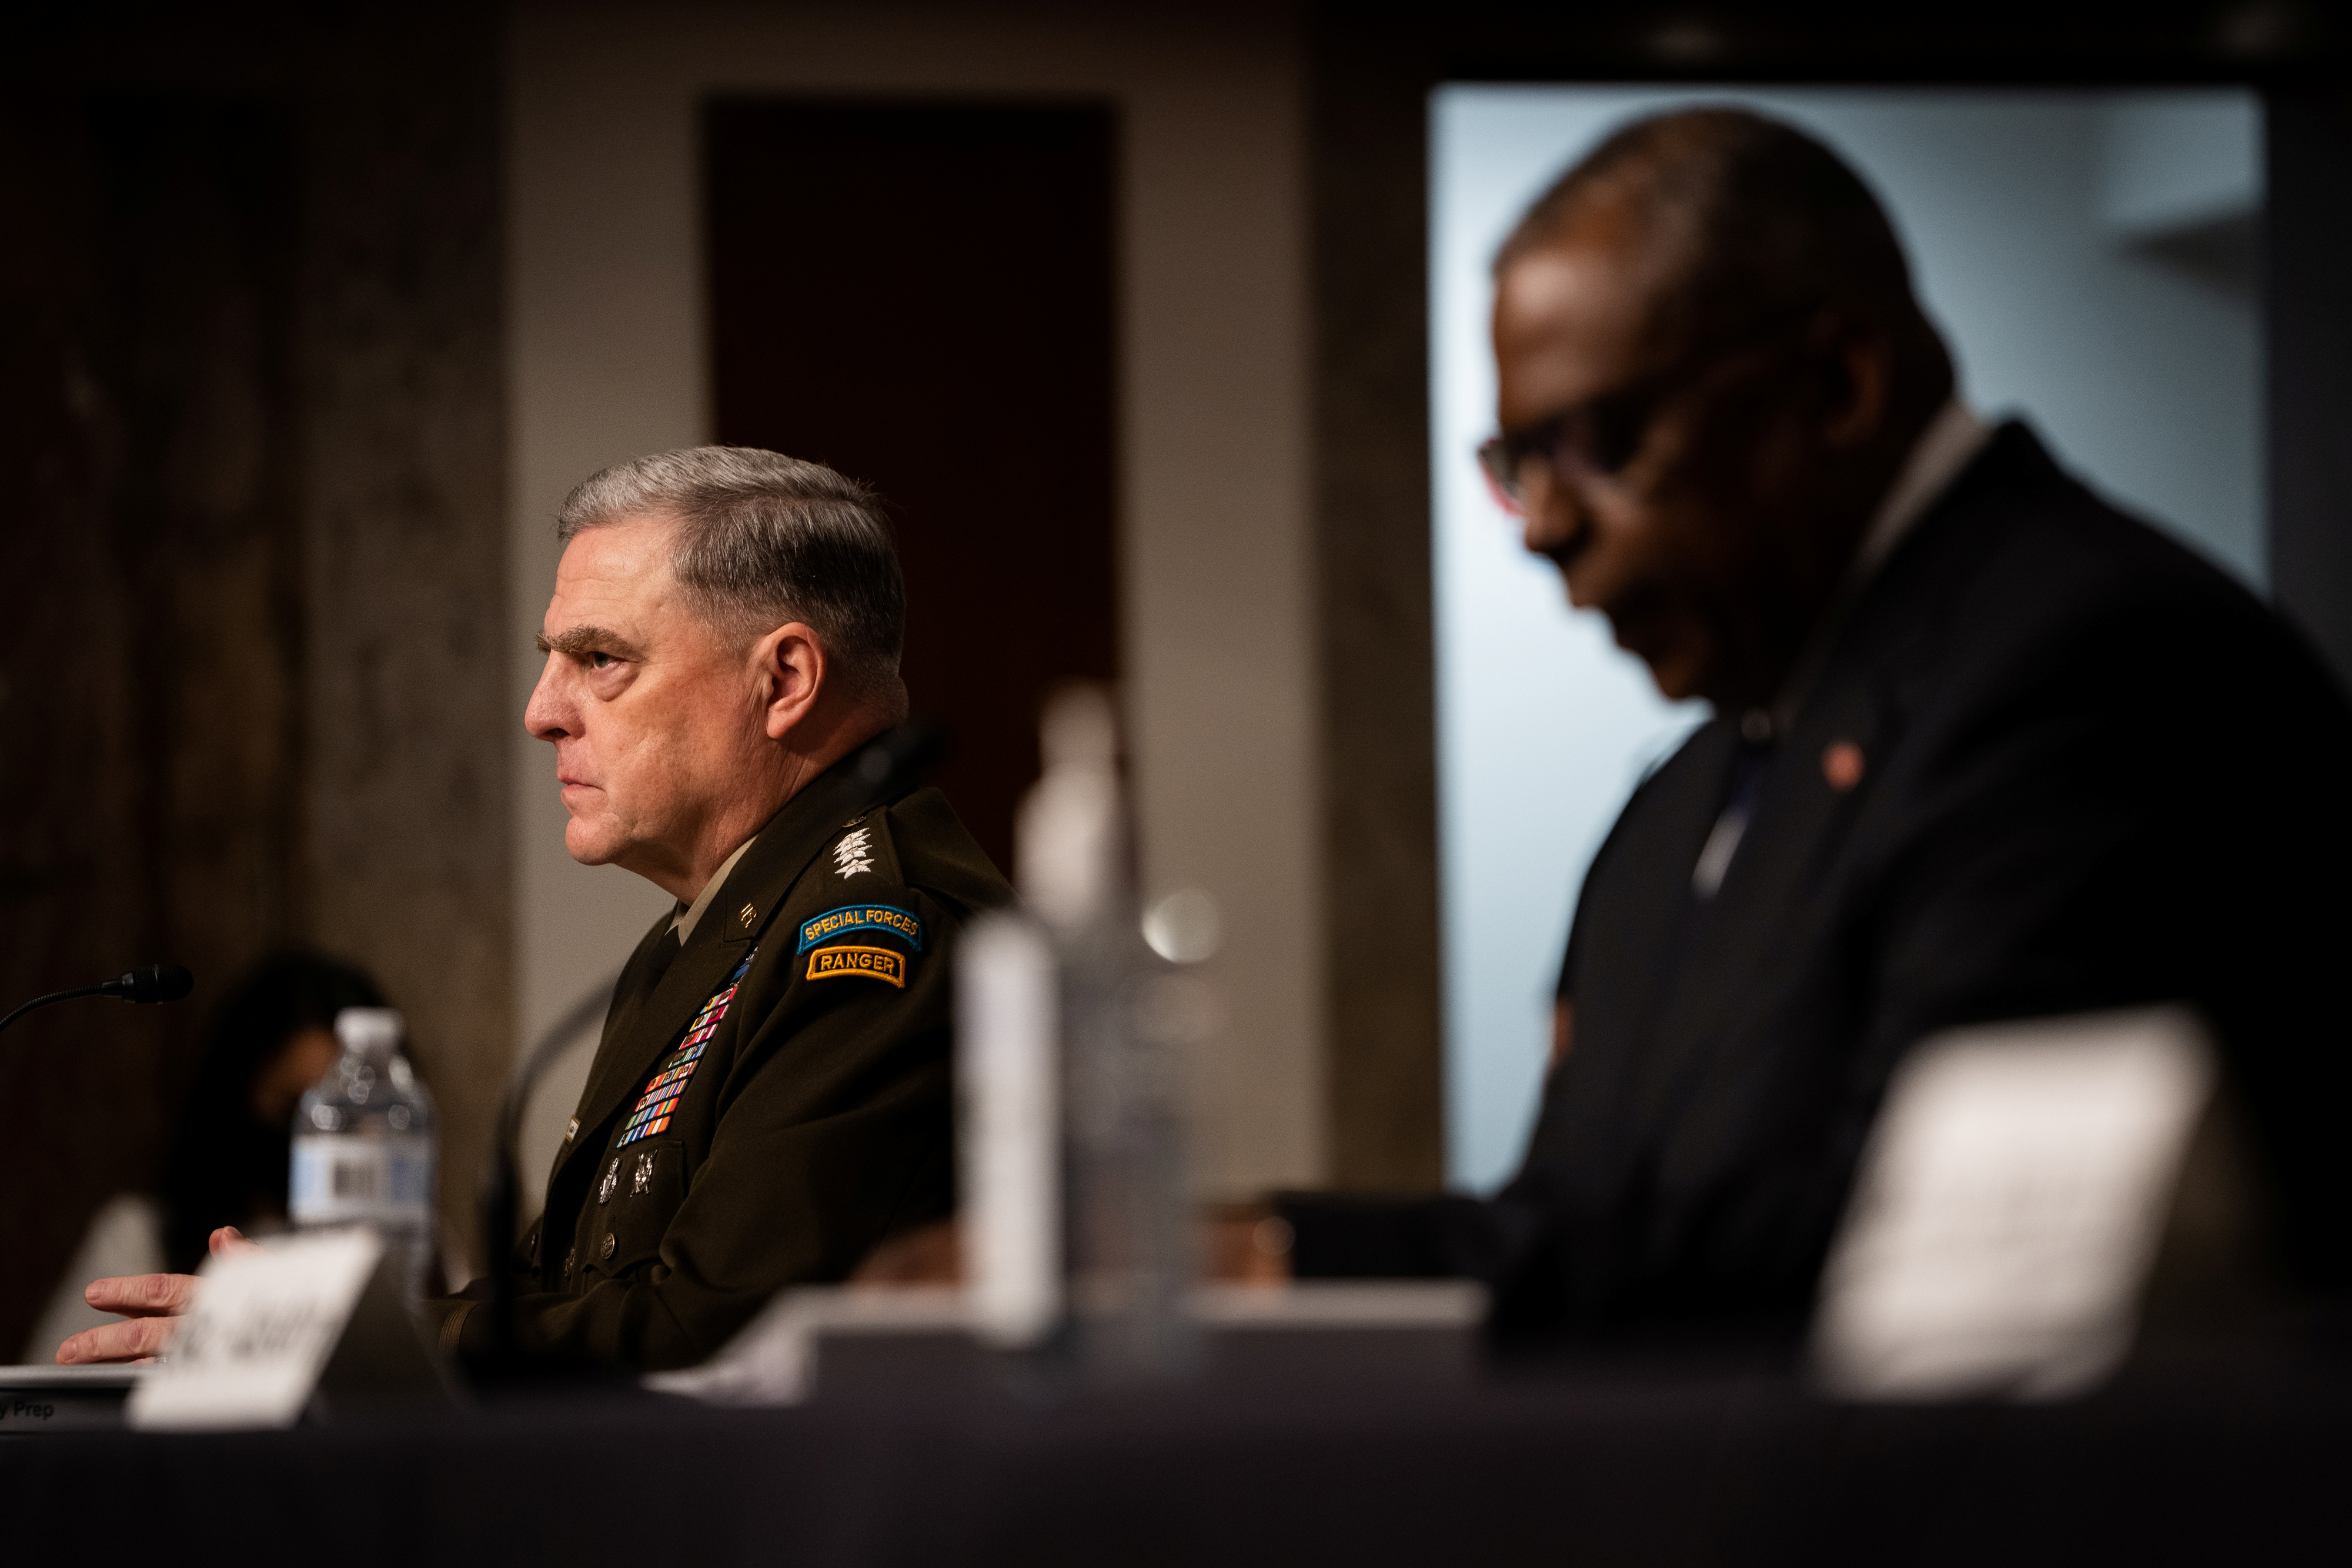 Chairman of the Joint Chiefs of Staff General Mark Milley and U.S. Defense Secretary Lloyd Austin testify during a Senate Armed Services Committee hearing on the conclusion of military operations in Afghanistan and plans for future counterterrorism operations, on Capitol Hill in Washington, U.S., September 28, 2021. Sarahbeth Maney/Pool via REUTERS